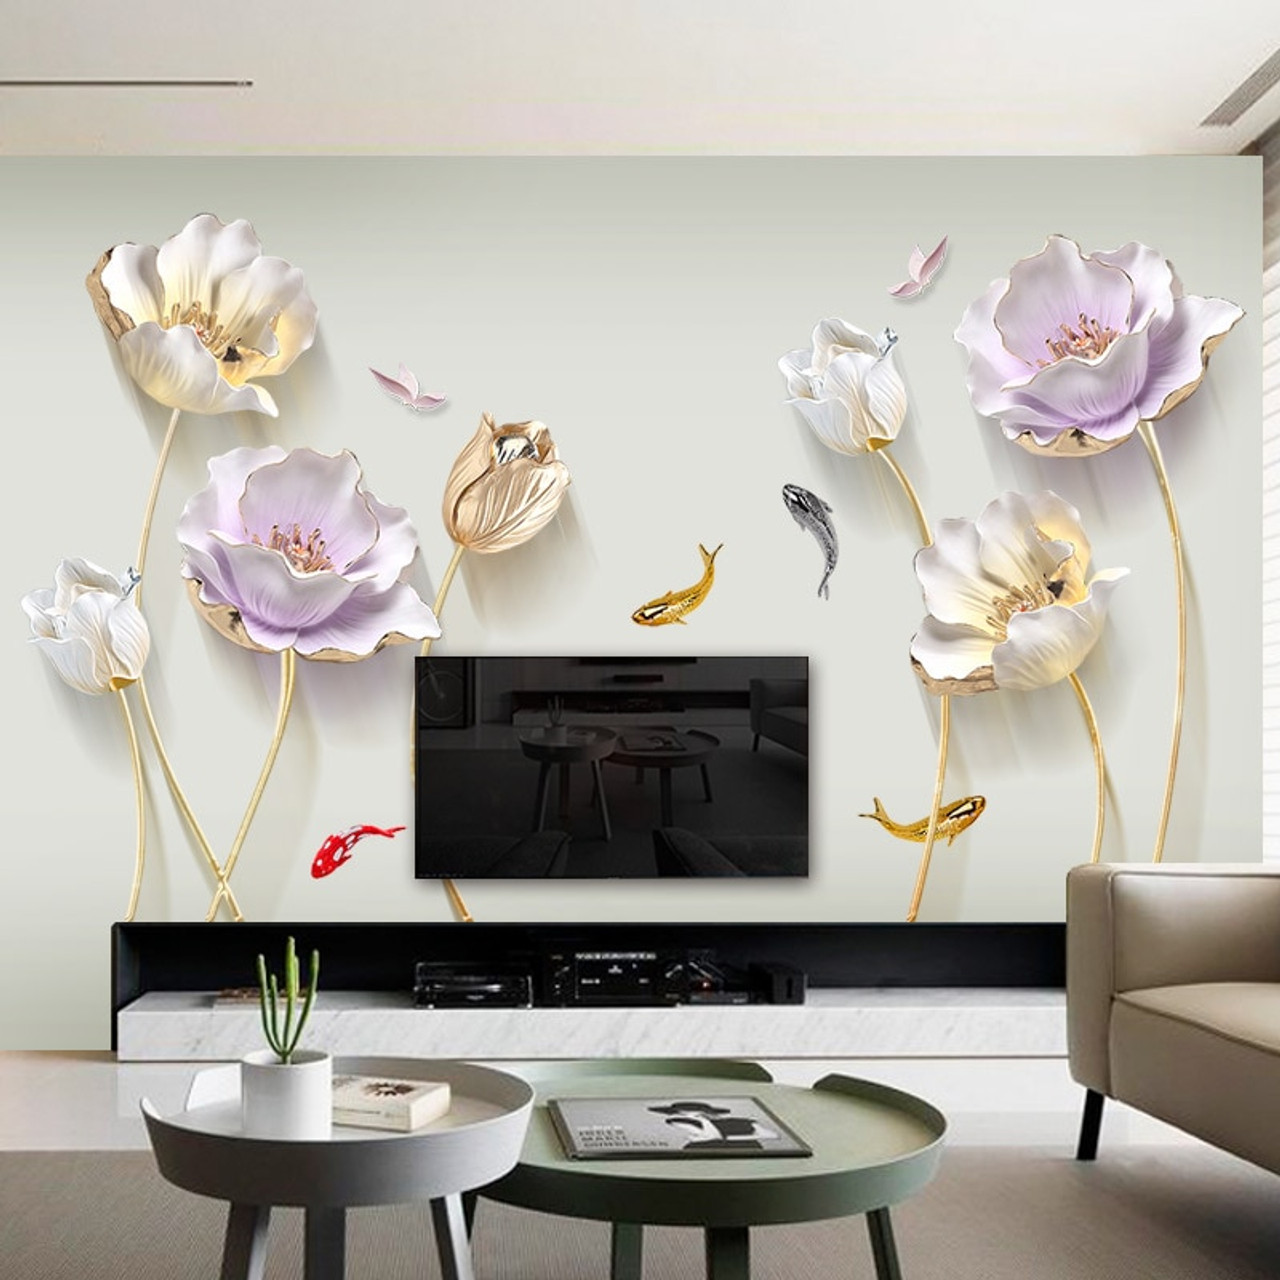 Chinese Style Flower 3d Wallpaper Wall Stickers Living Room Bedroom Bathroom Home Decor Decoration Poster Onshopdeals Com